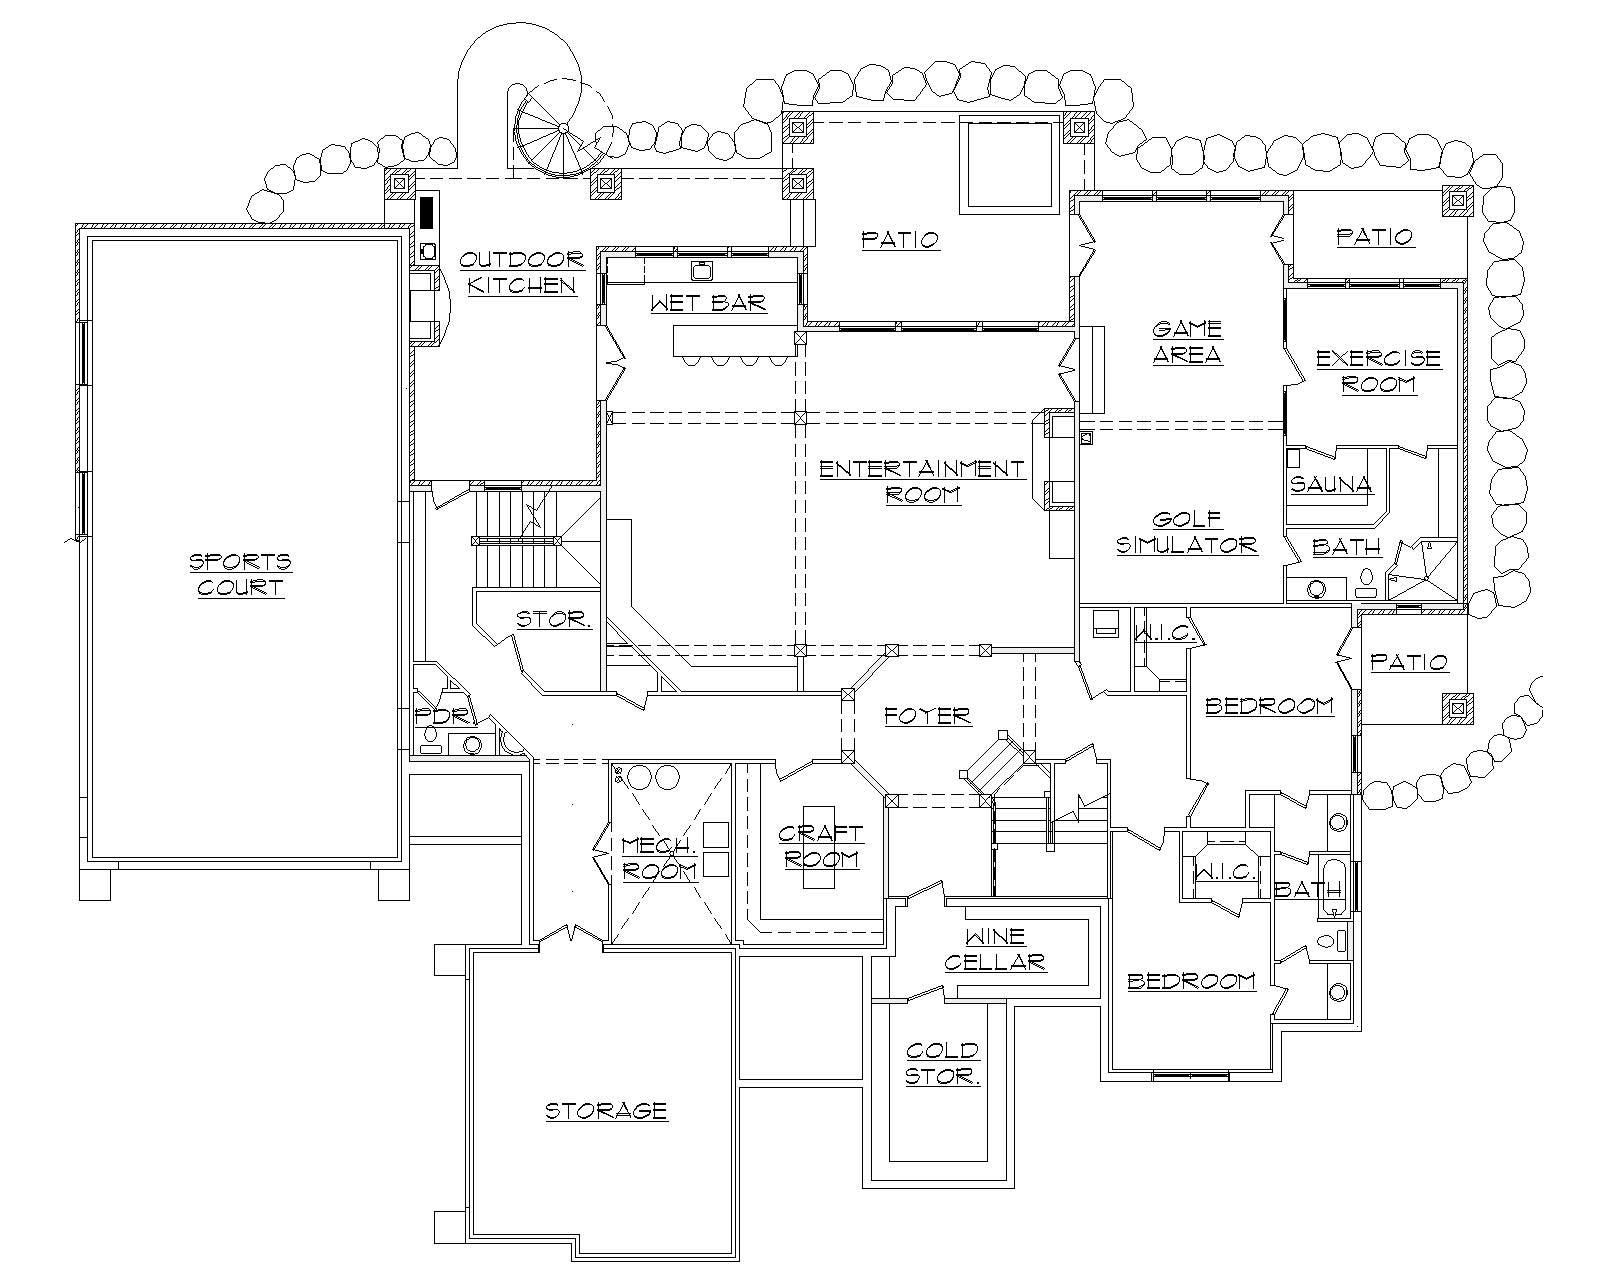 House plans with indoor basketball court how to costs for Home indoor basketball court cost